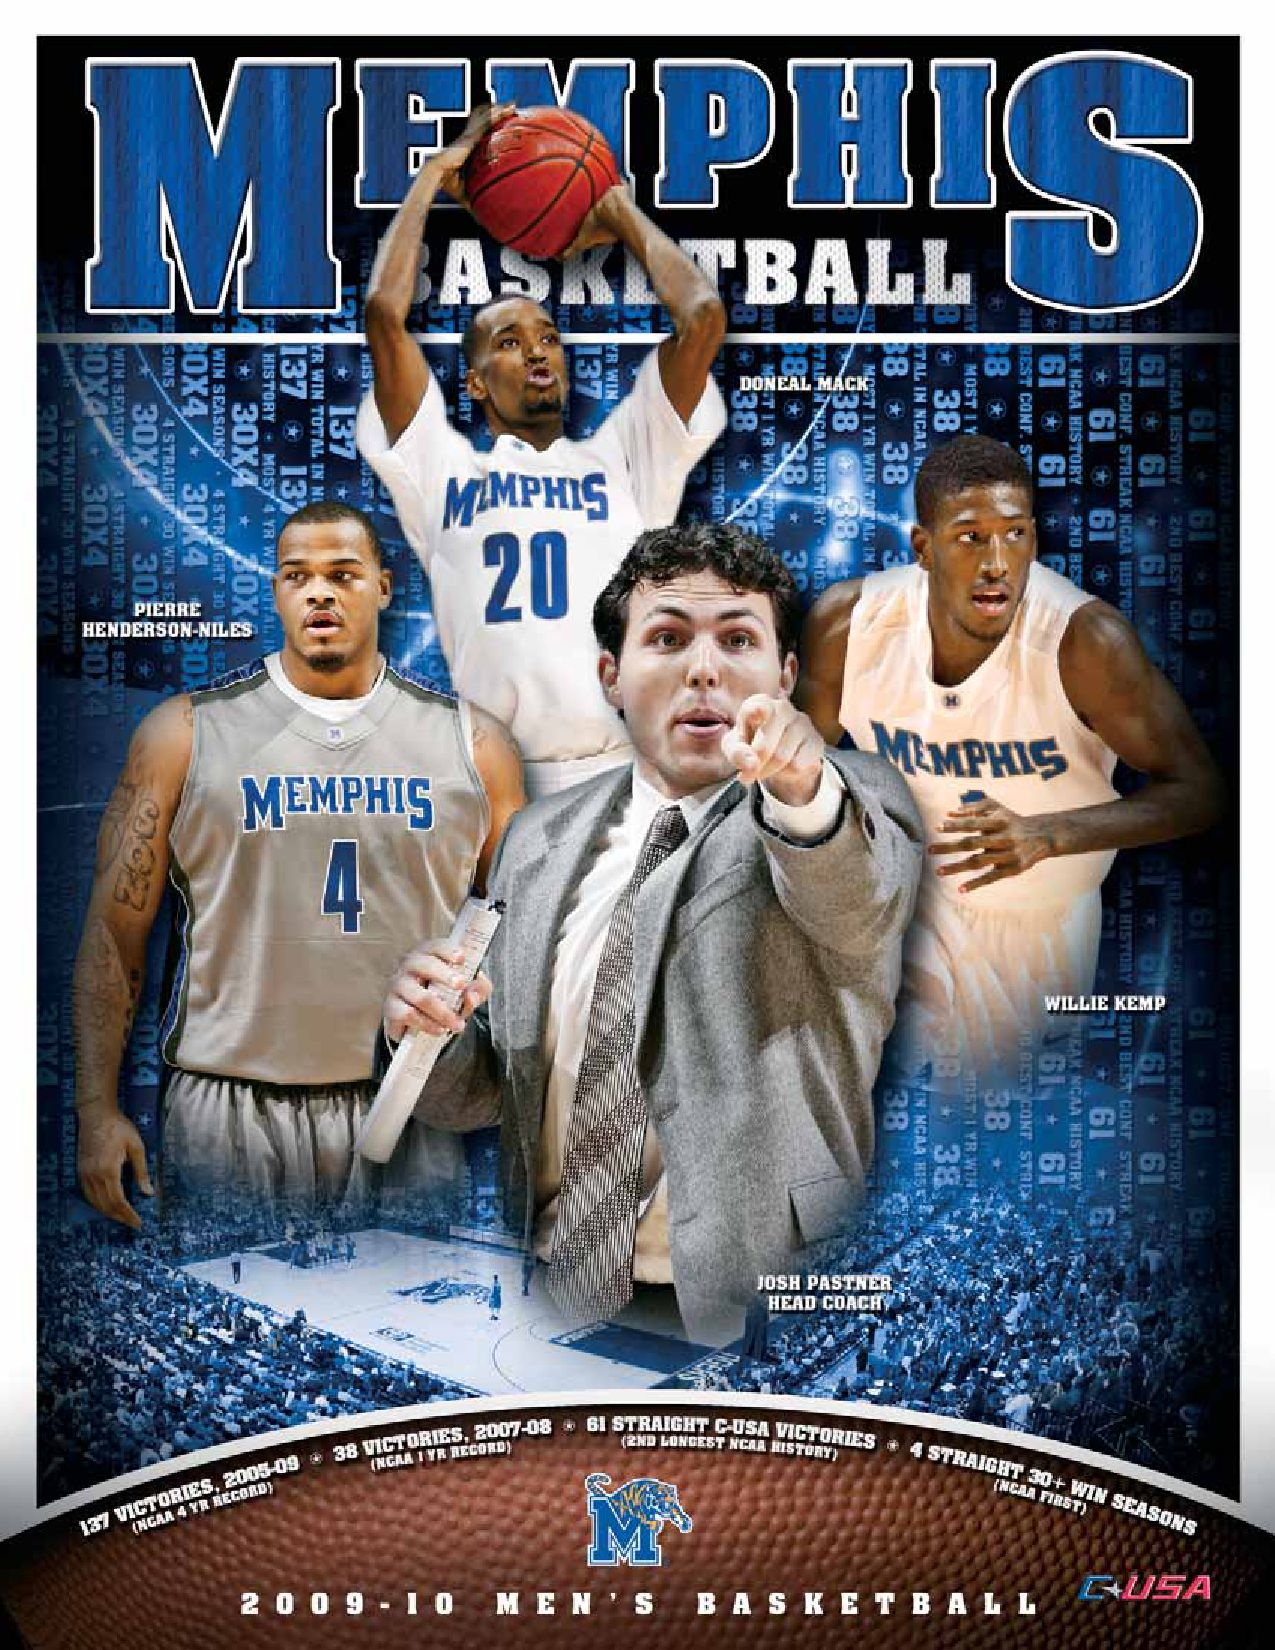 a1908fa3792b 2009-10 Memphis Men s Basketball Information Guide by University of Memphis  Athletic Media Relations - issuu